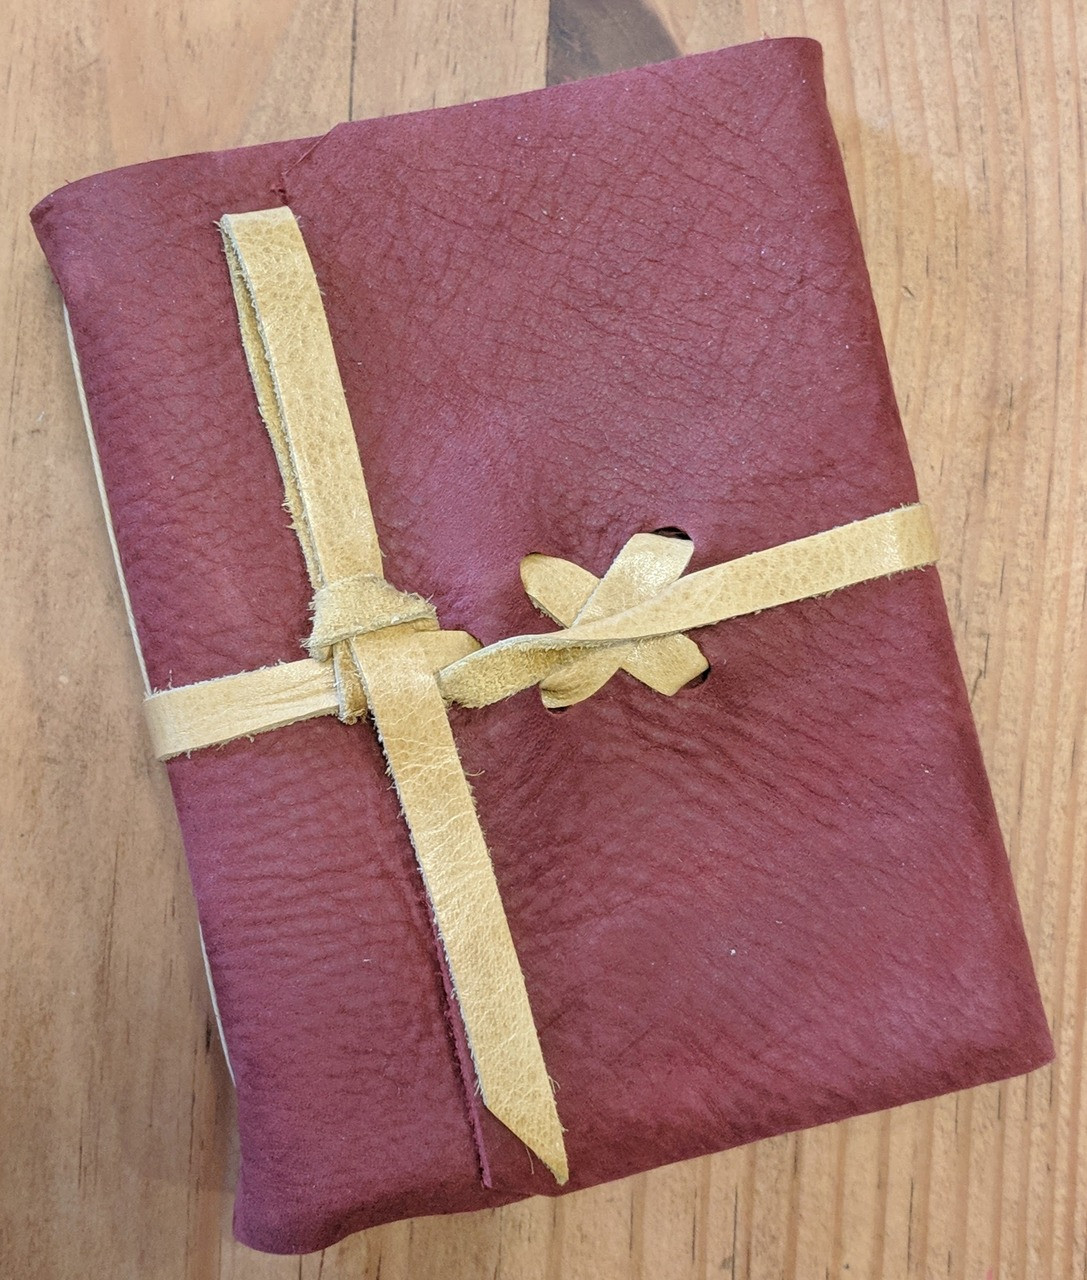 spellbinding journals - small red